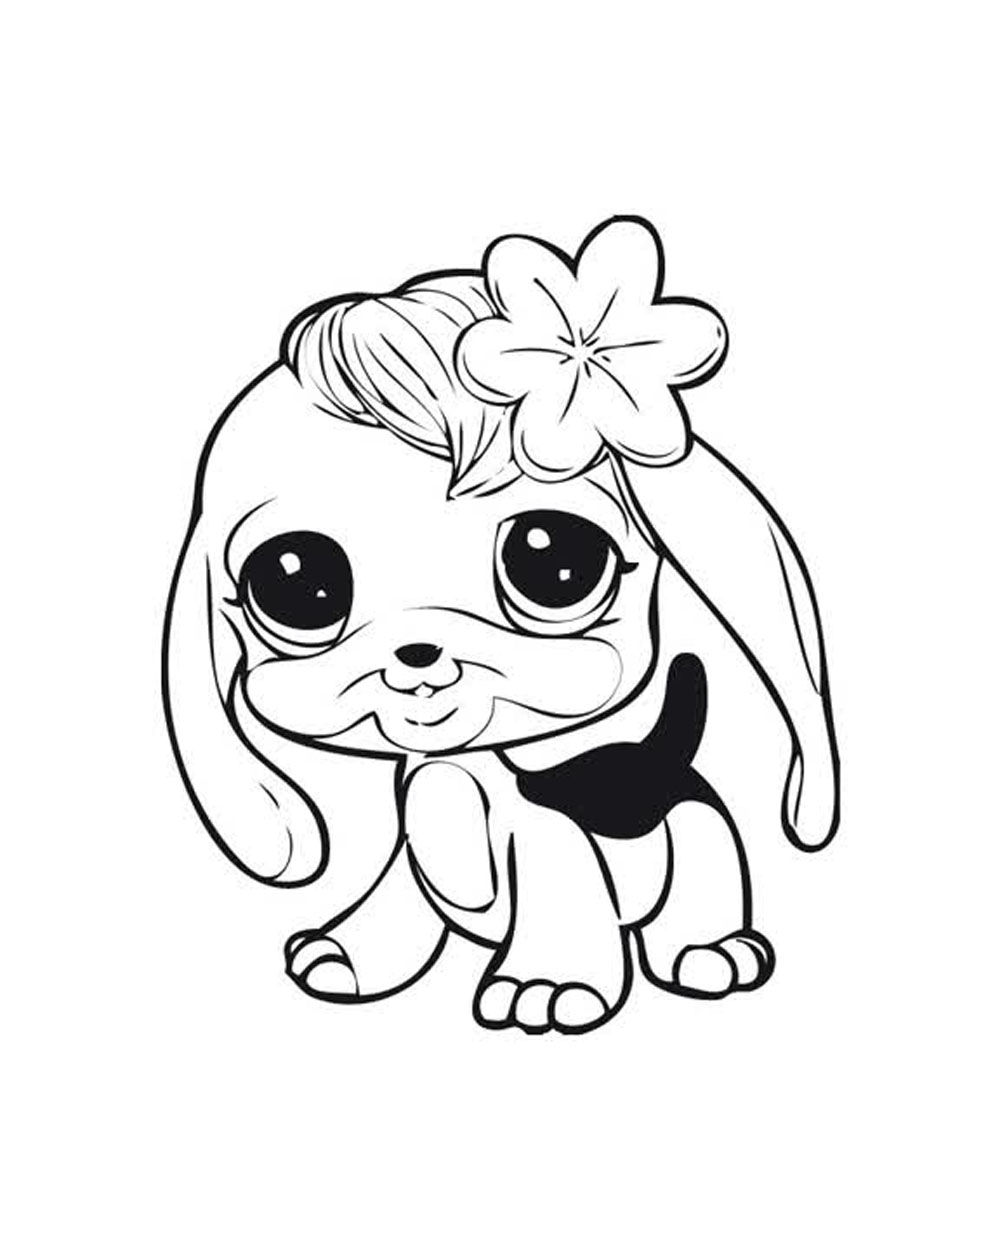 Littlest Pet Shop Coloring Pages Littlest Pet Shops Coloring Page For My Kids